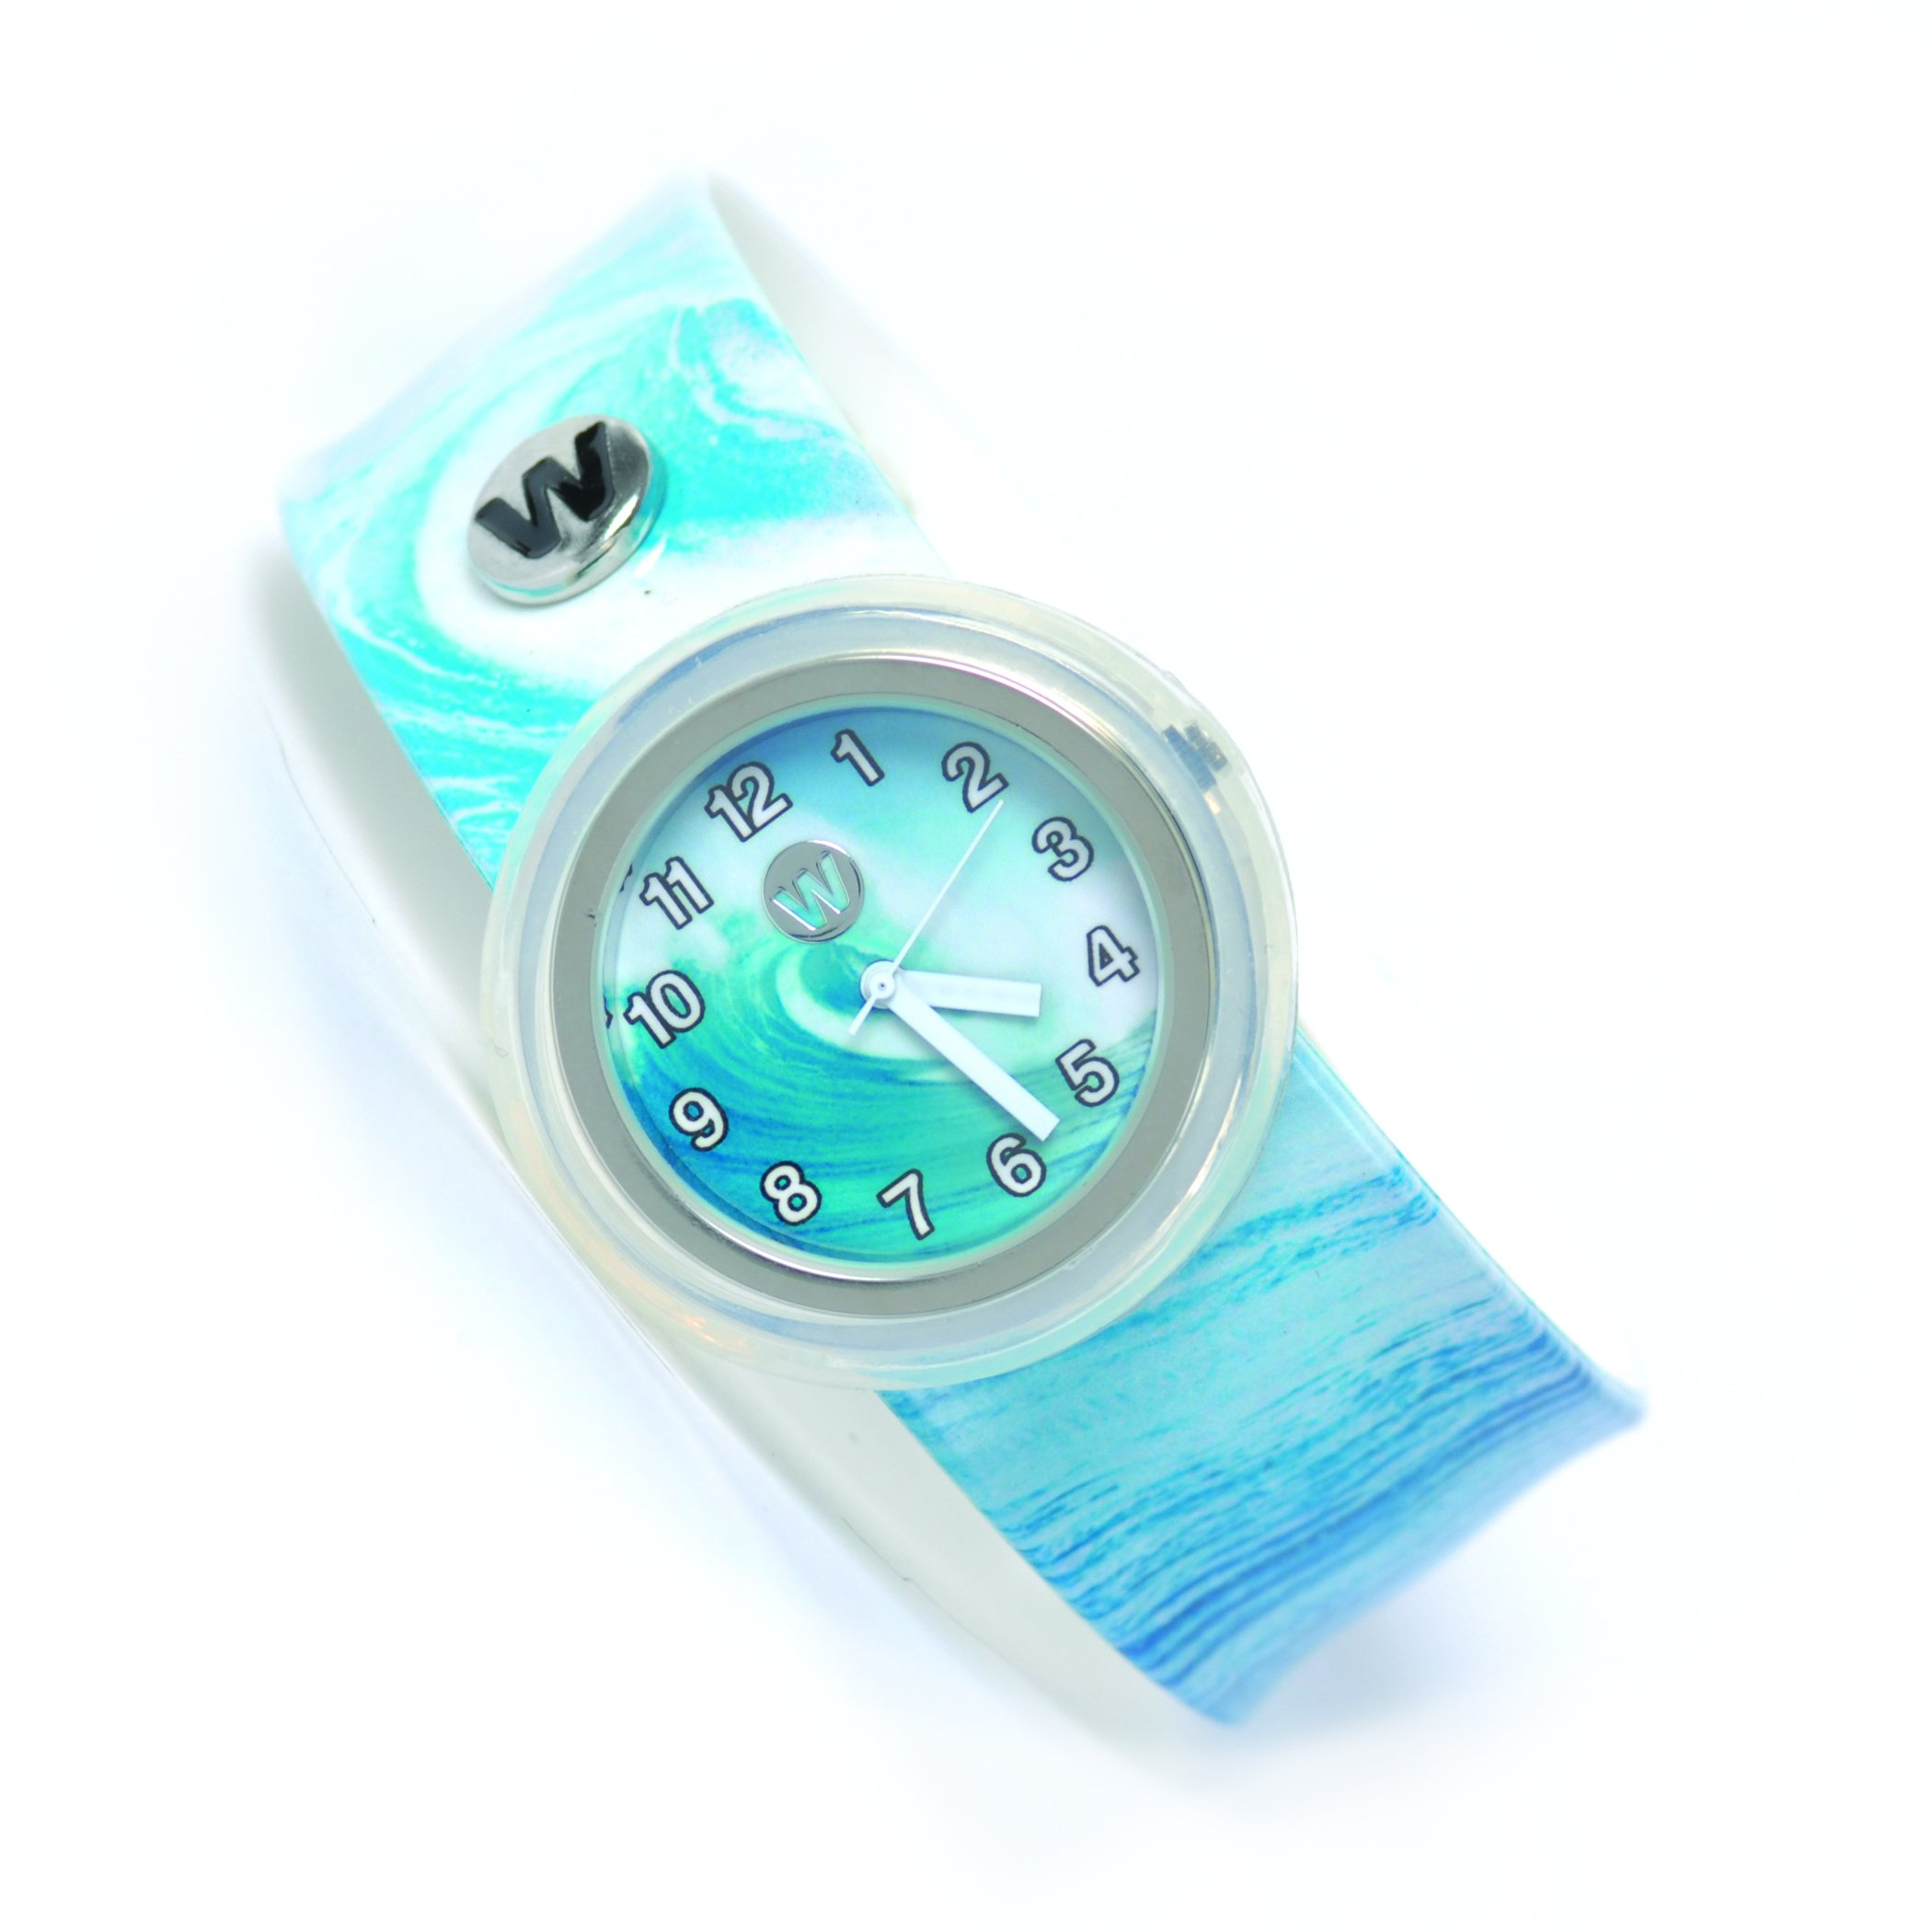 Watchitude Slap Watch, Wave Shredder, Collectible, Limited Edition by watchitude